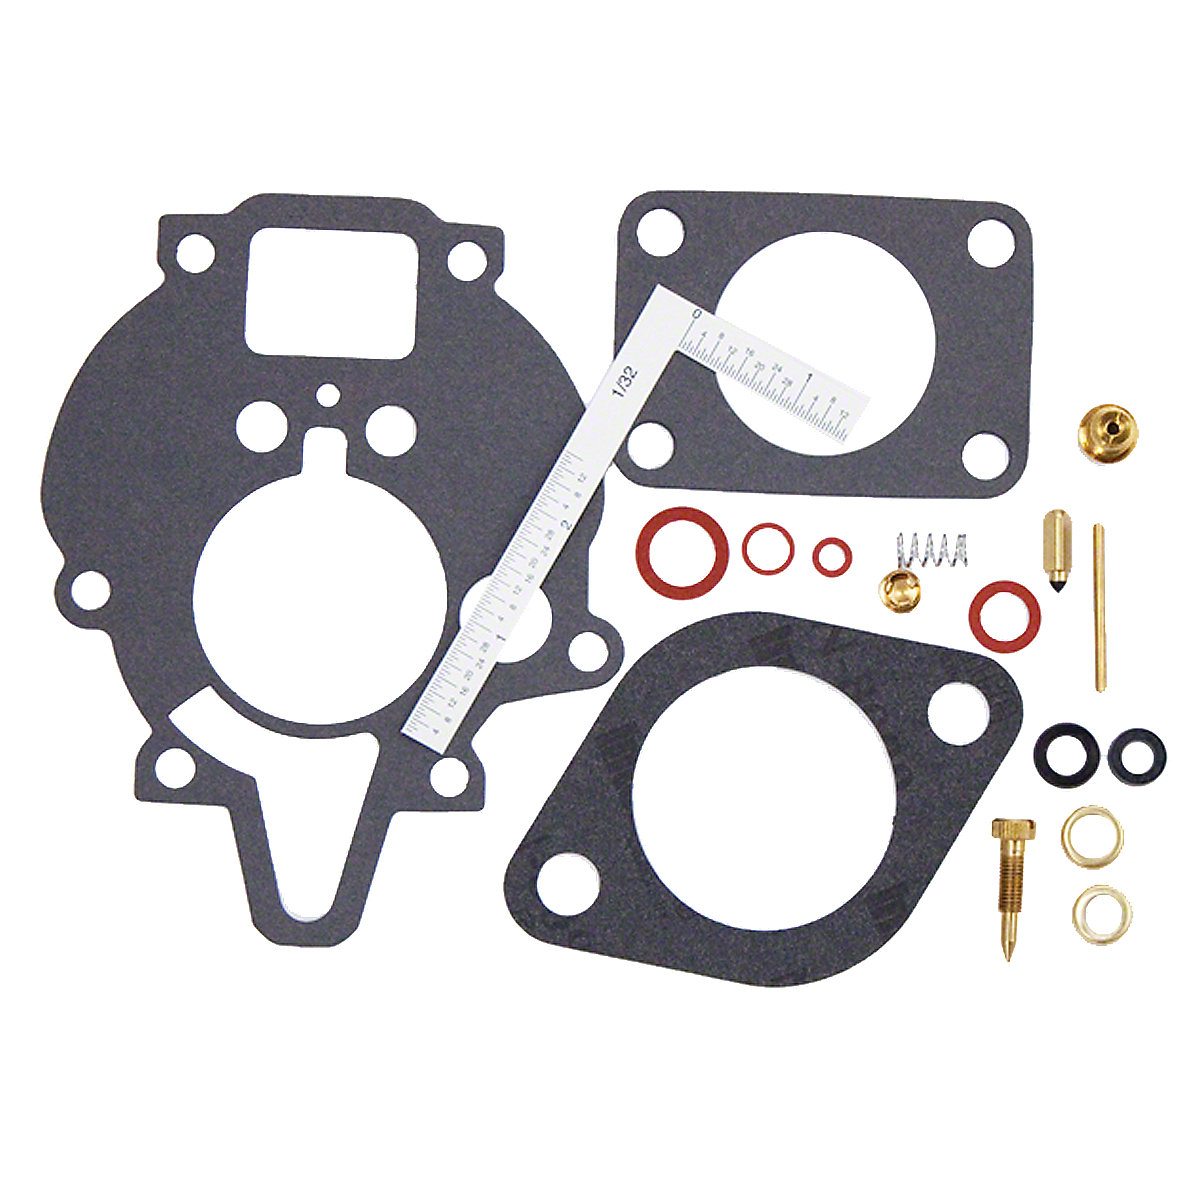 Zenith Economy Carburetor Kit For Zenith Carburetor Numbers#: 12510, 12879, 13209, 13320, 13429, 13430, 13450, 13633A, 13750